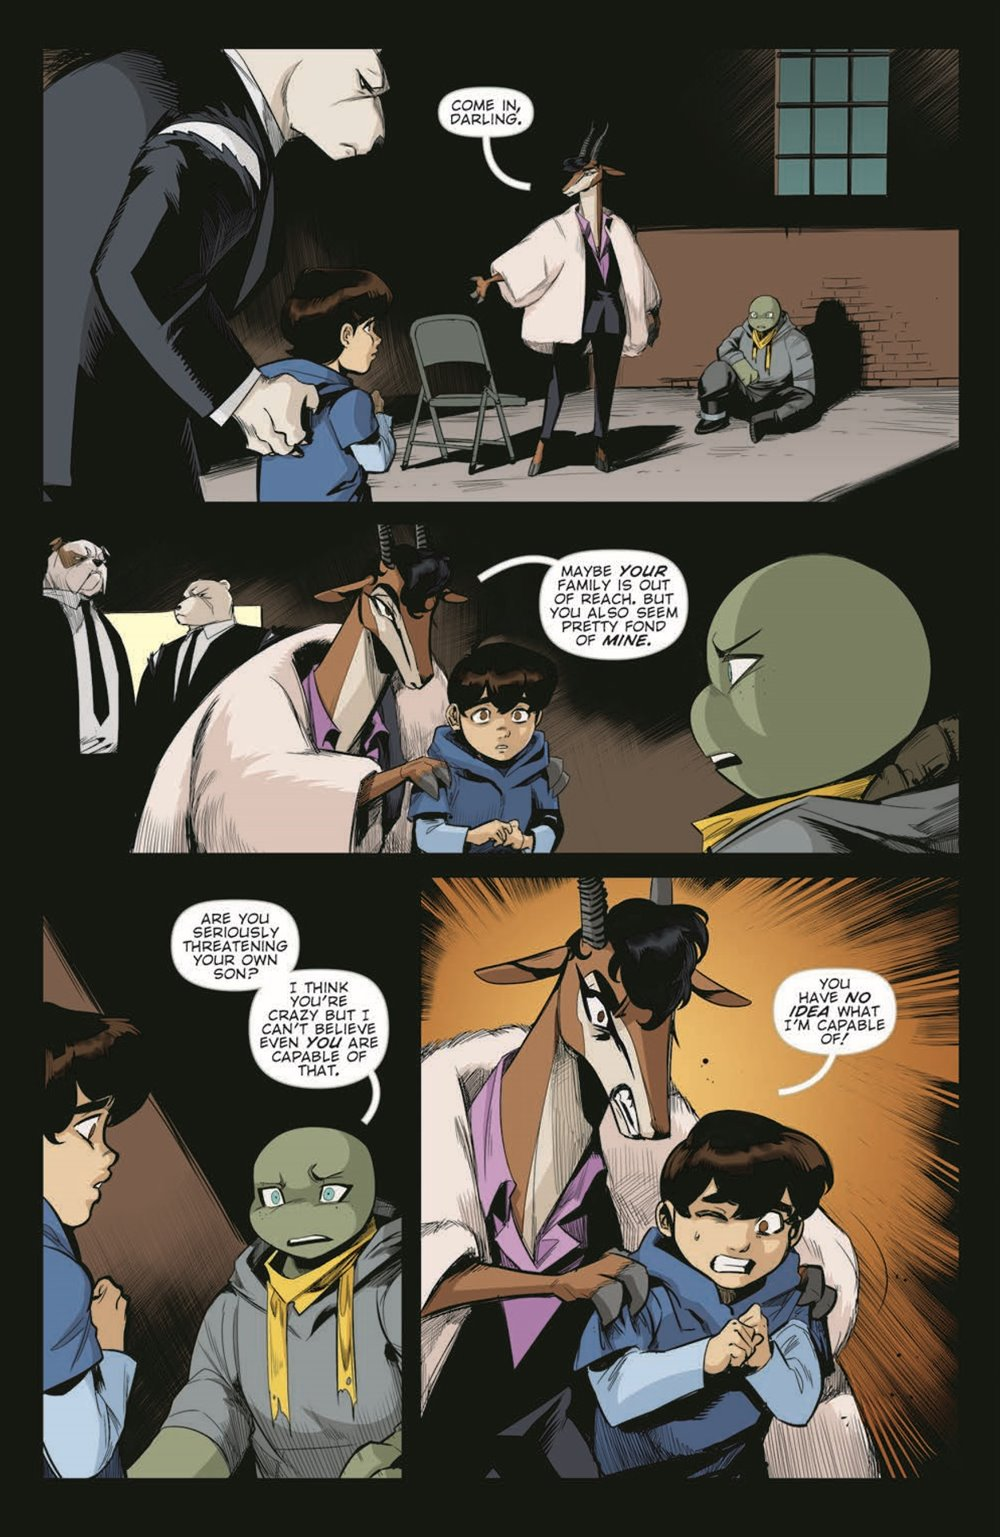 TMNT-JennikaII_06_pr-7 ComicList Previews: TEENAGE MUTANT NINJA TURTLES JENNIKA II #6 (OF 6)